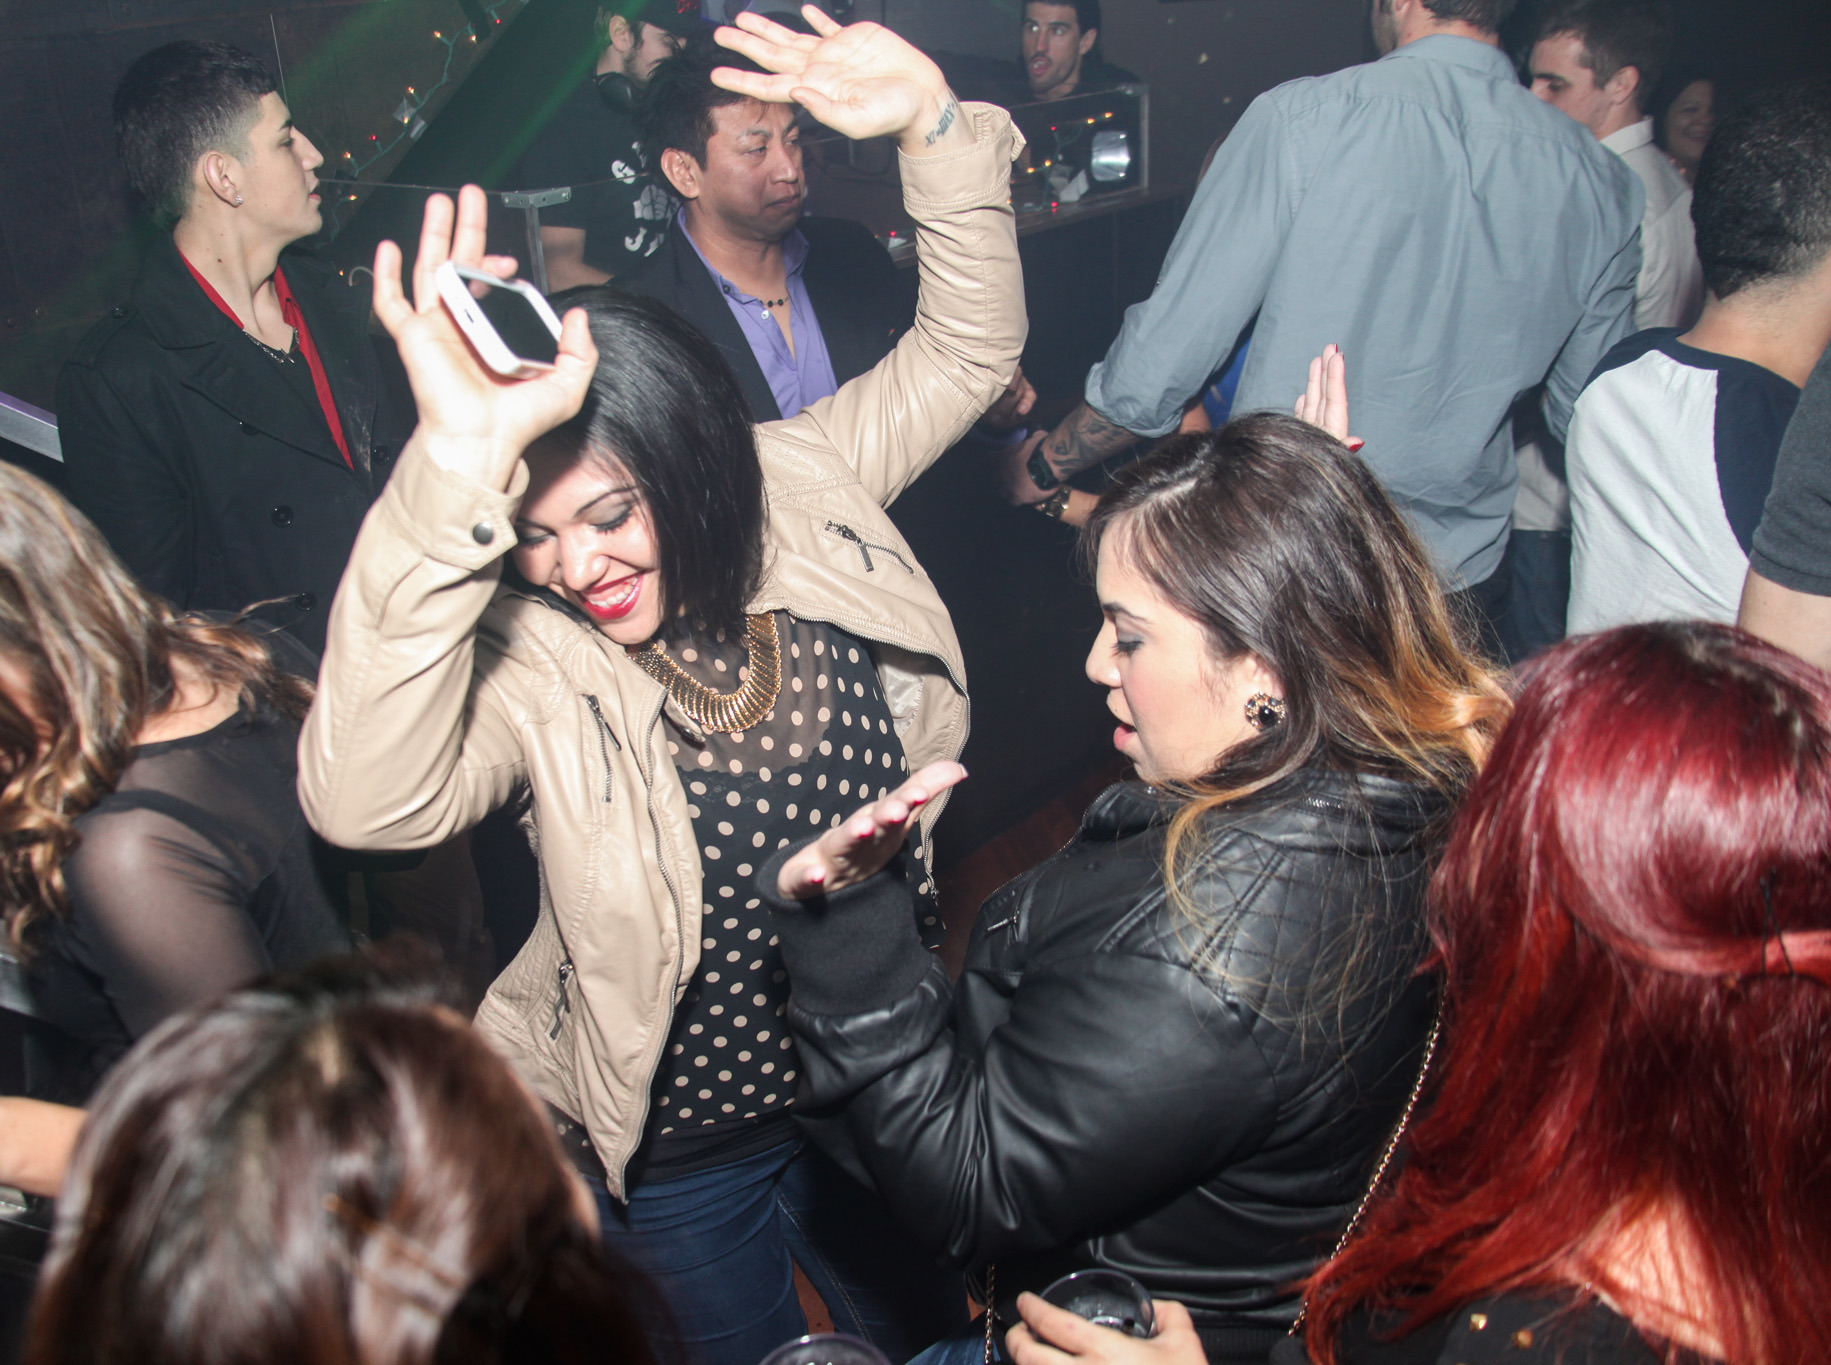 The best nightclubs in Chicago